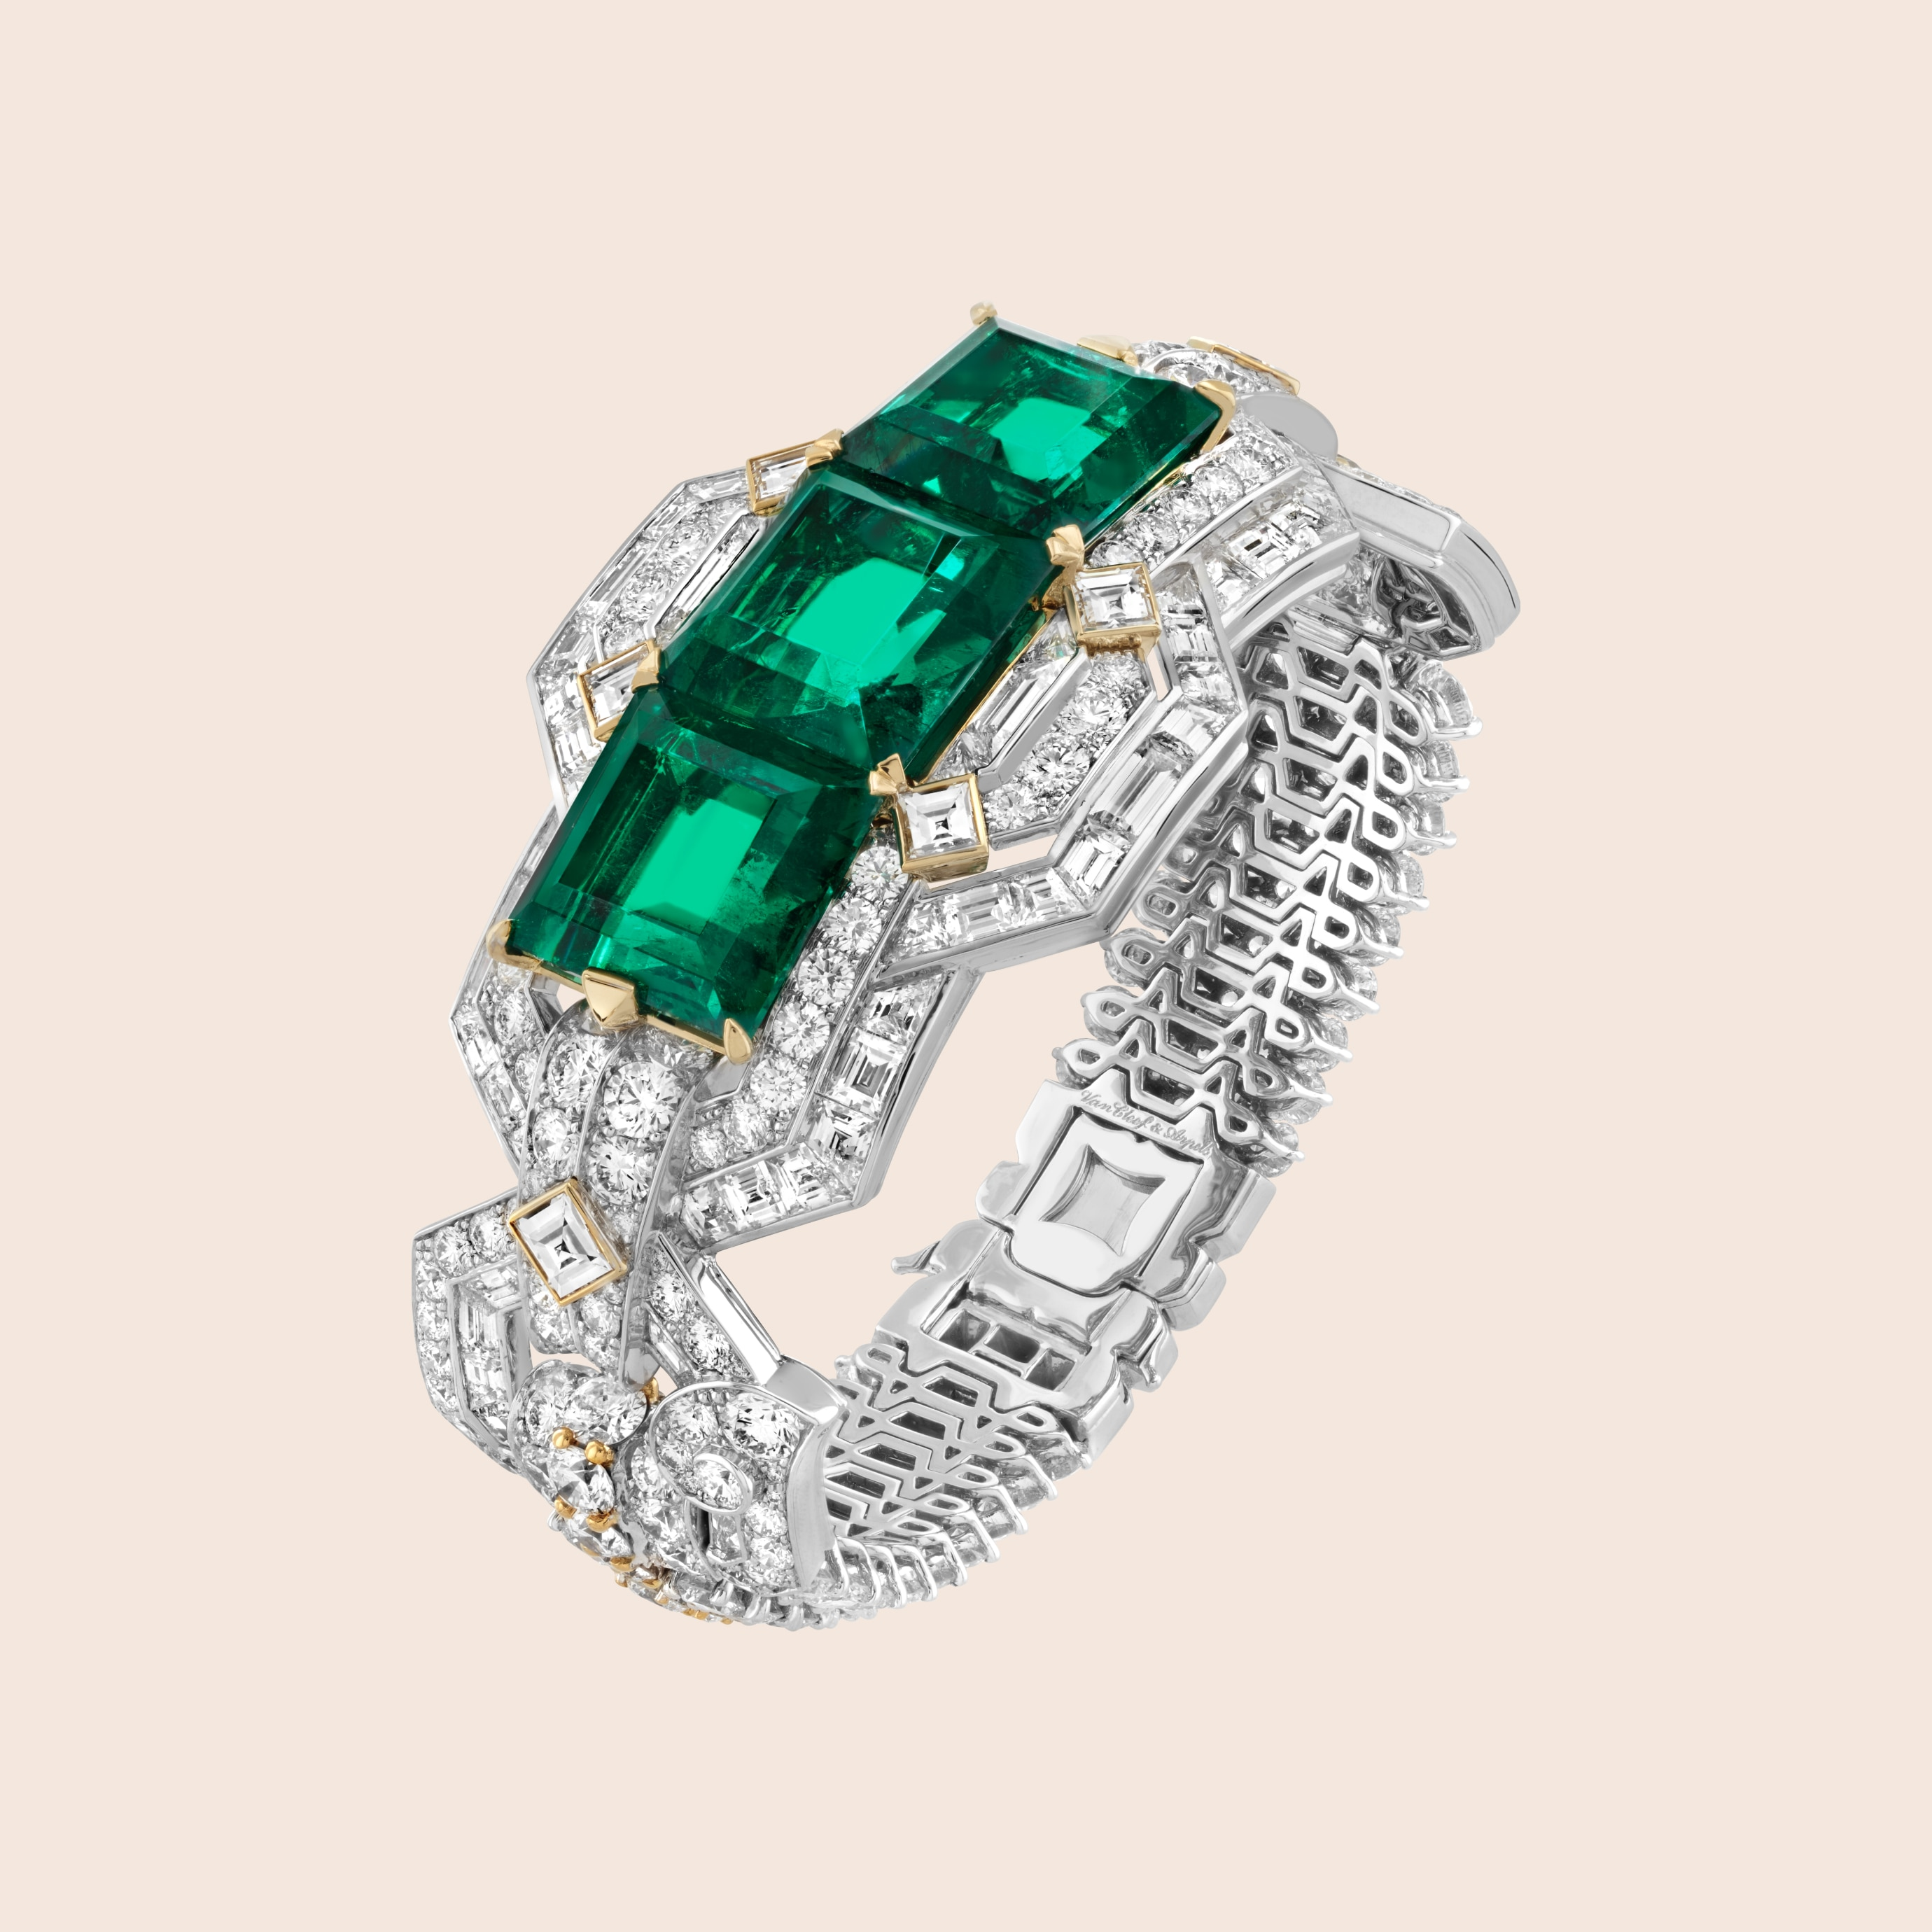 Lovers' path bracelet, White gold, yellow gold, one emerald-cut emerald of 14.47 carats (Colombia), one emerald-cut emerald of 13.71 carats (Colombia), one emerald-cut emerald of 11.90 carats (Colombia), diamonds, Romeo & Juliet collection, Van Cleef & Arpels